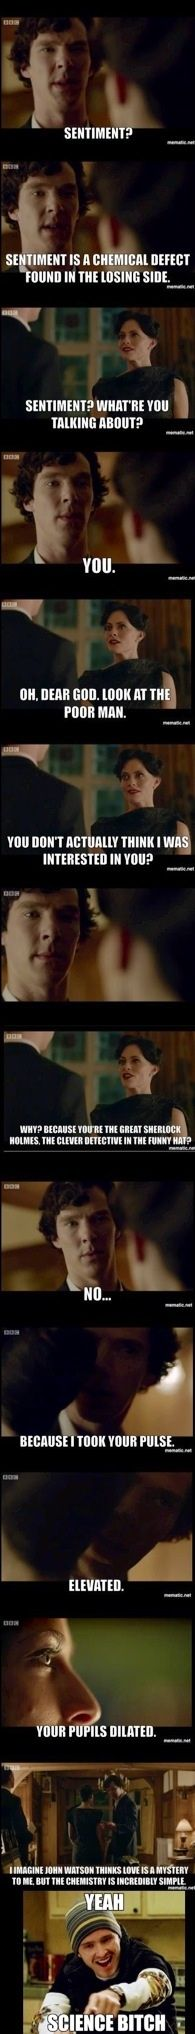 :) Sherlock. Who wouldn't have been turned on by that bomb of incredible observation.